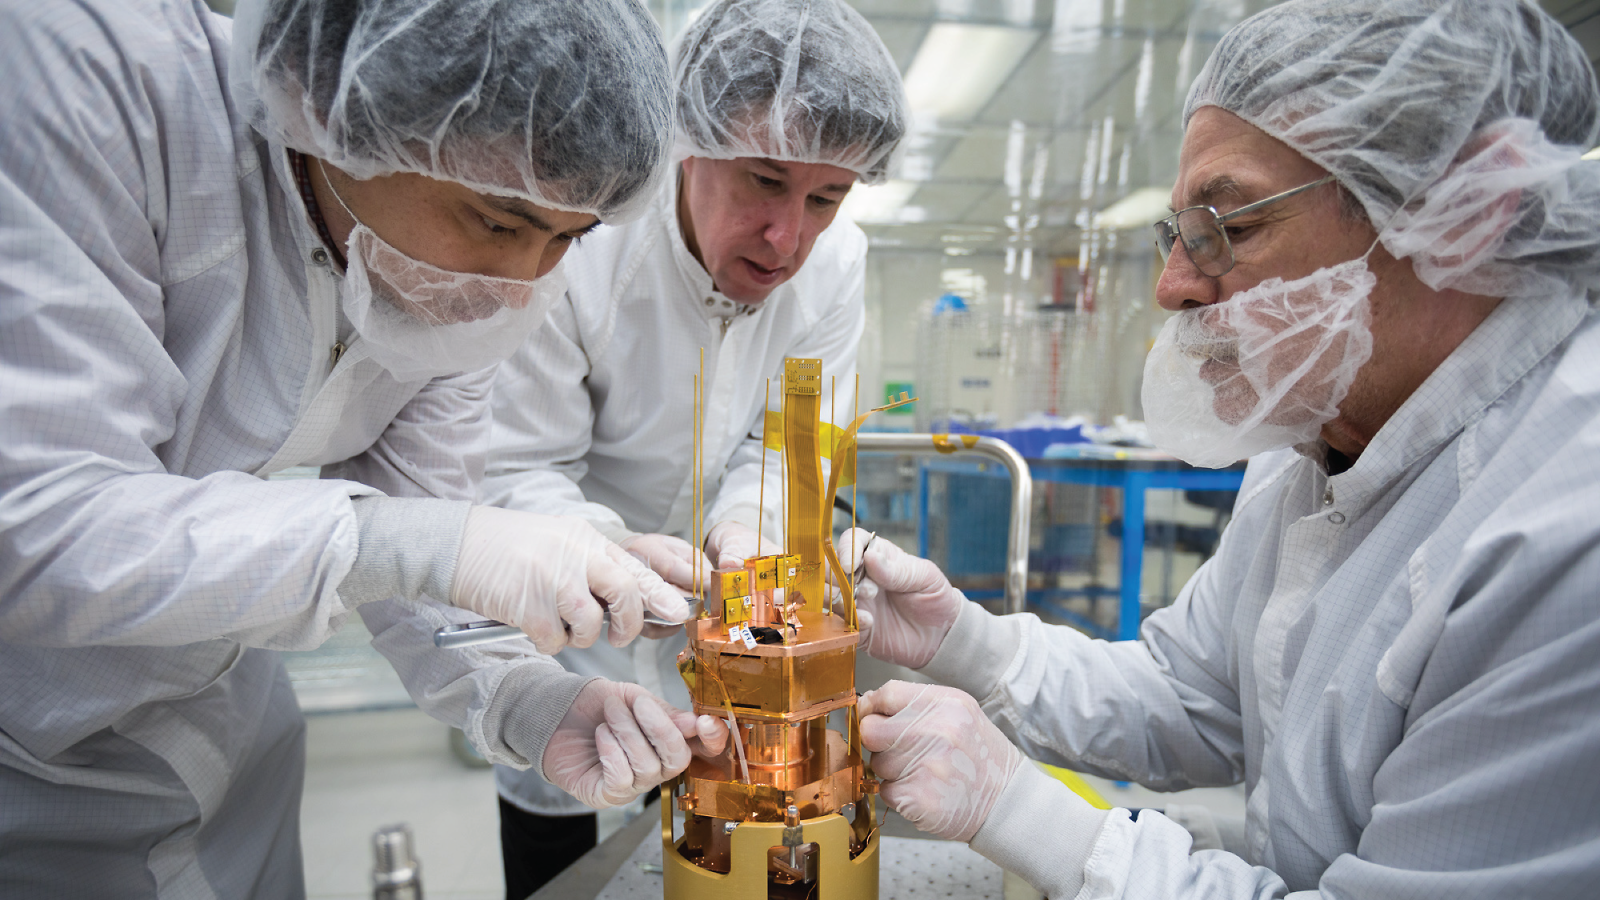 From left: SLAC's Tsuguo Aramak, Paul Brink and Mike Racine are performing final adjustments to the SuperCDMS SNOLAB engineering